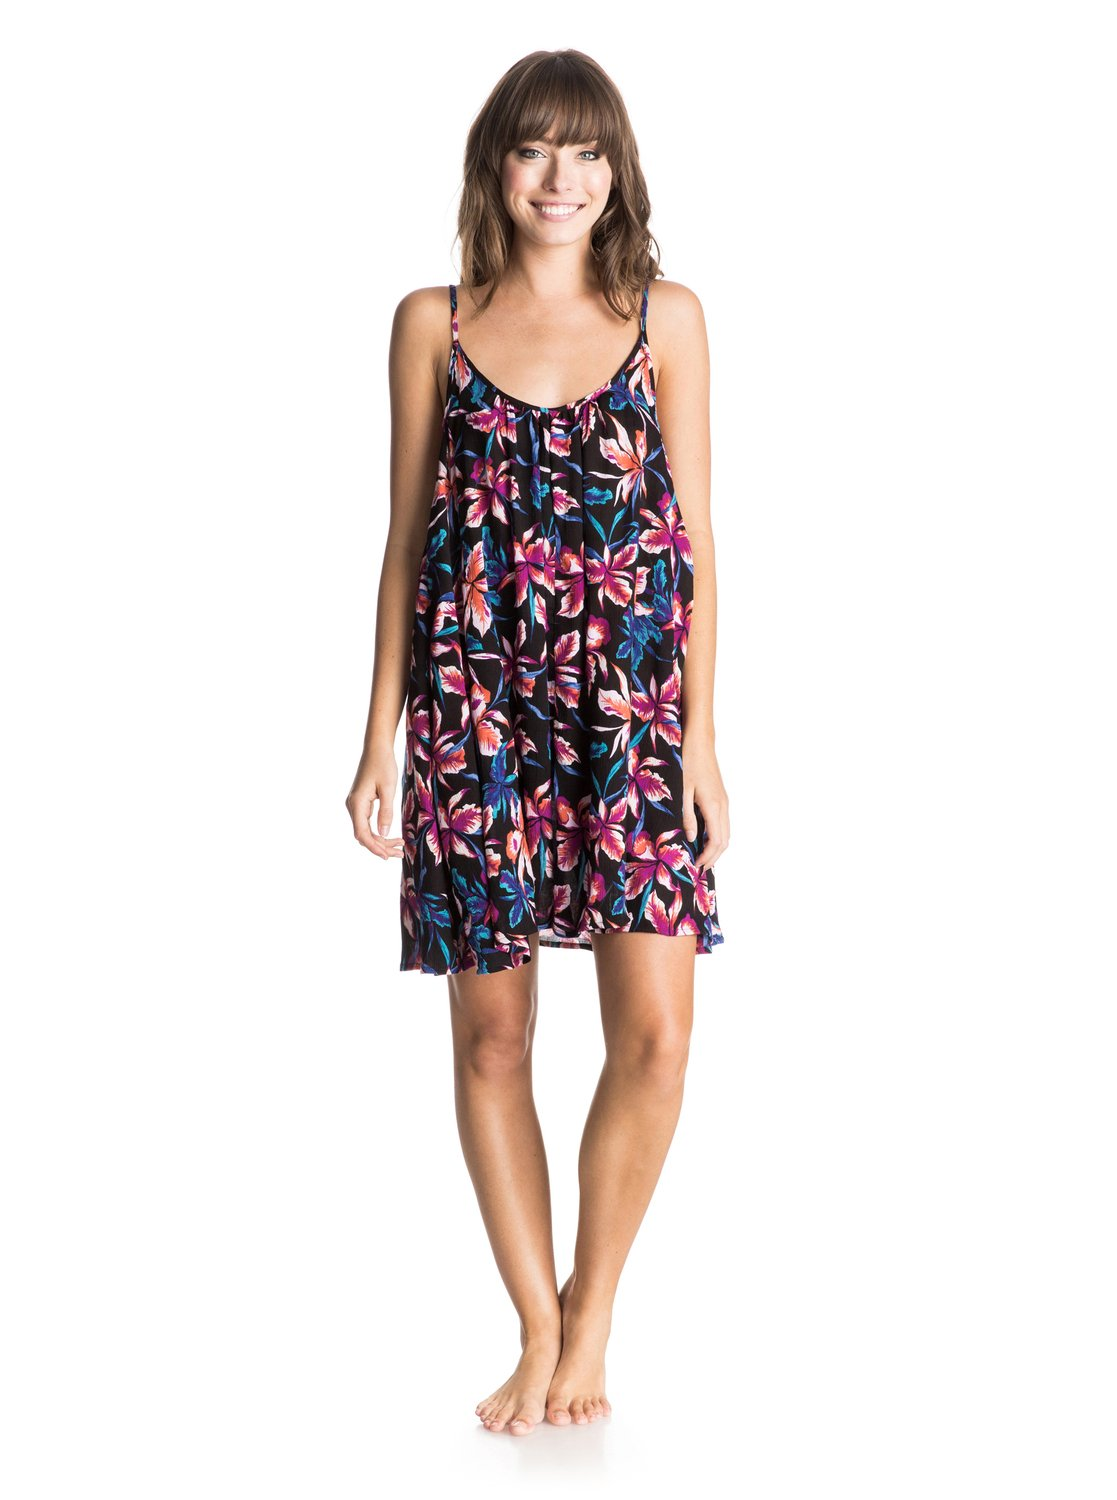 Windy Fly Away Print Cover Up Dress от Roxy